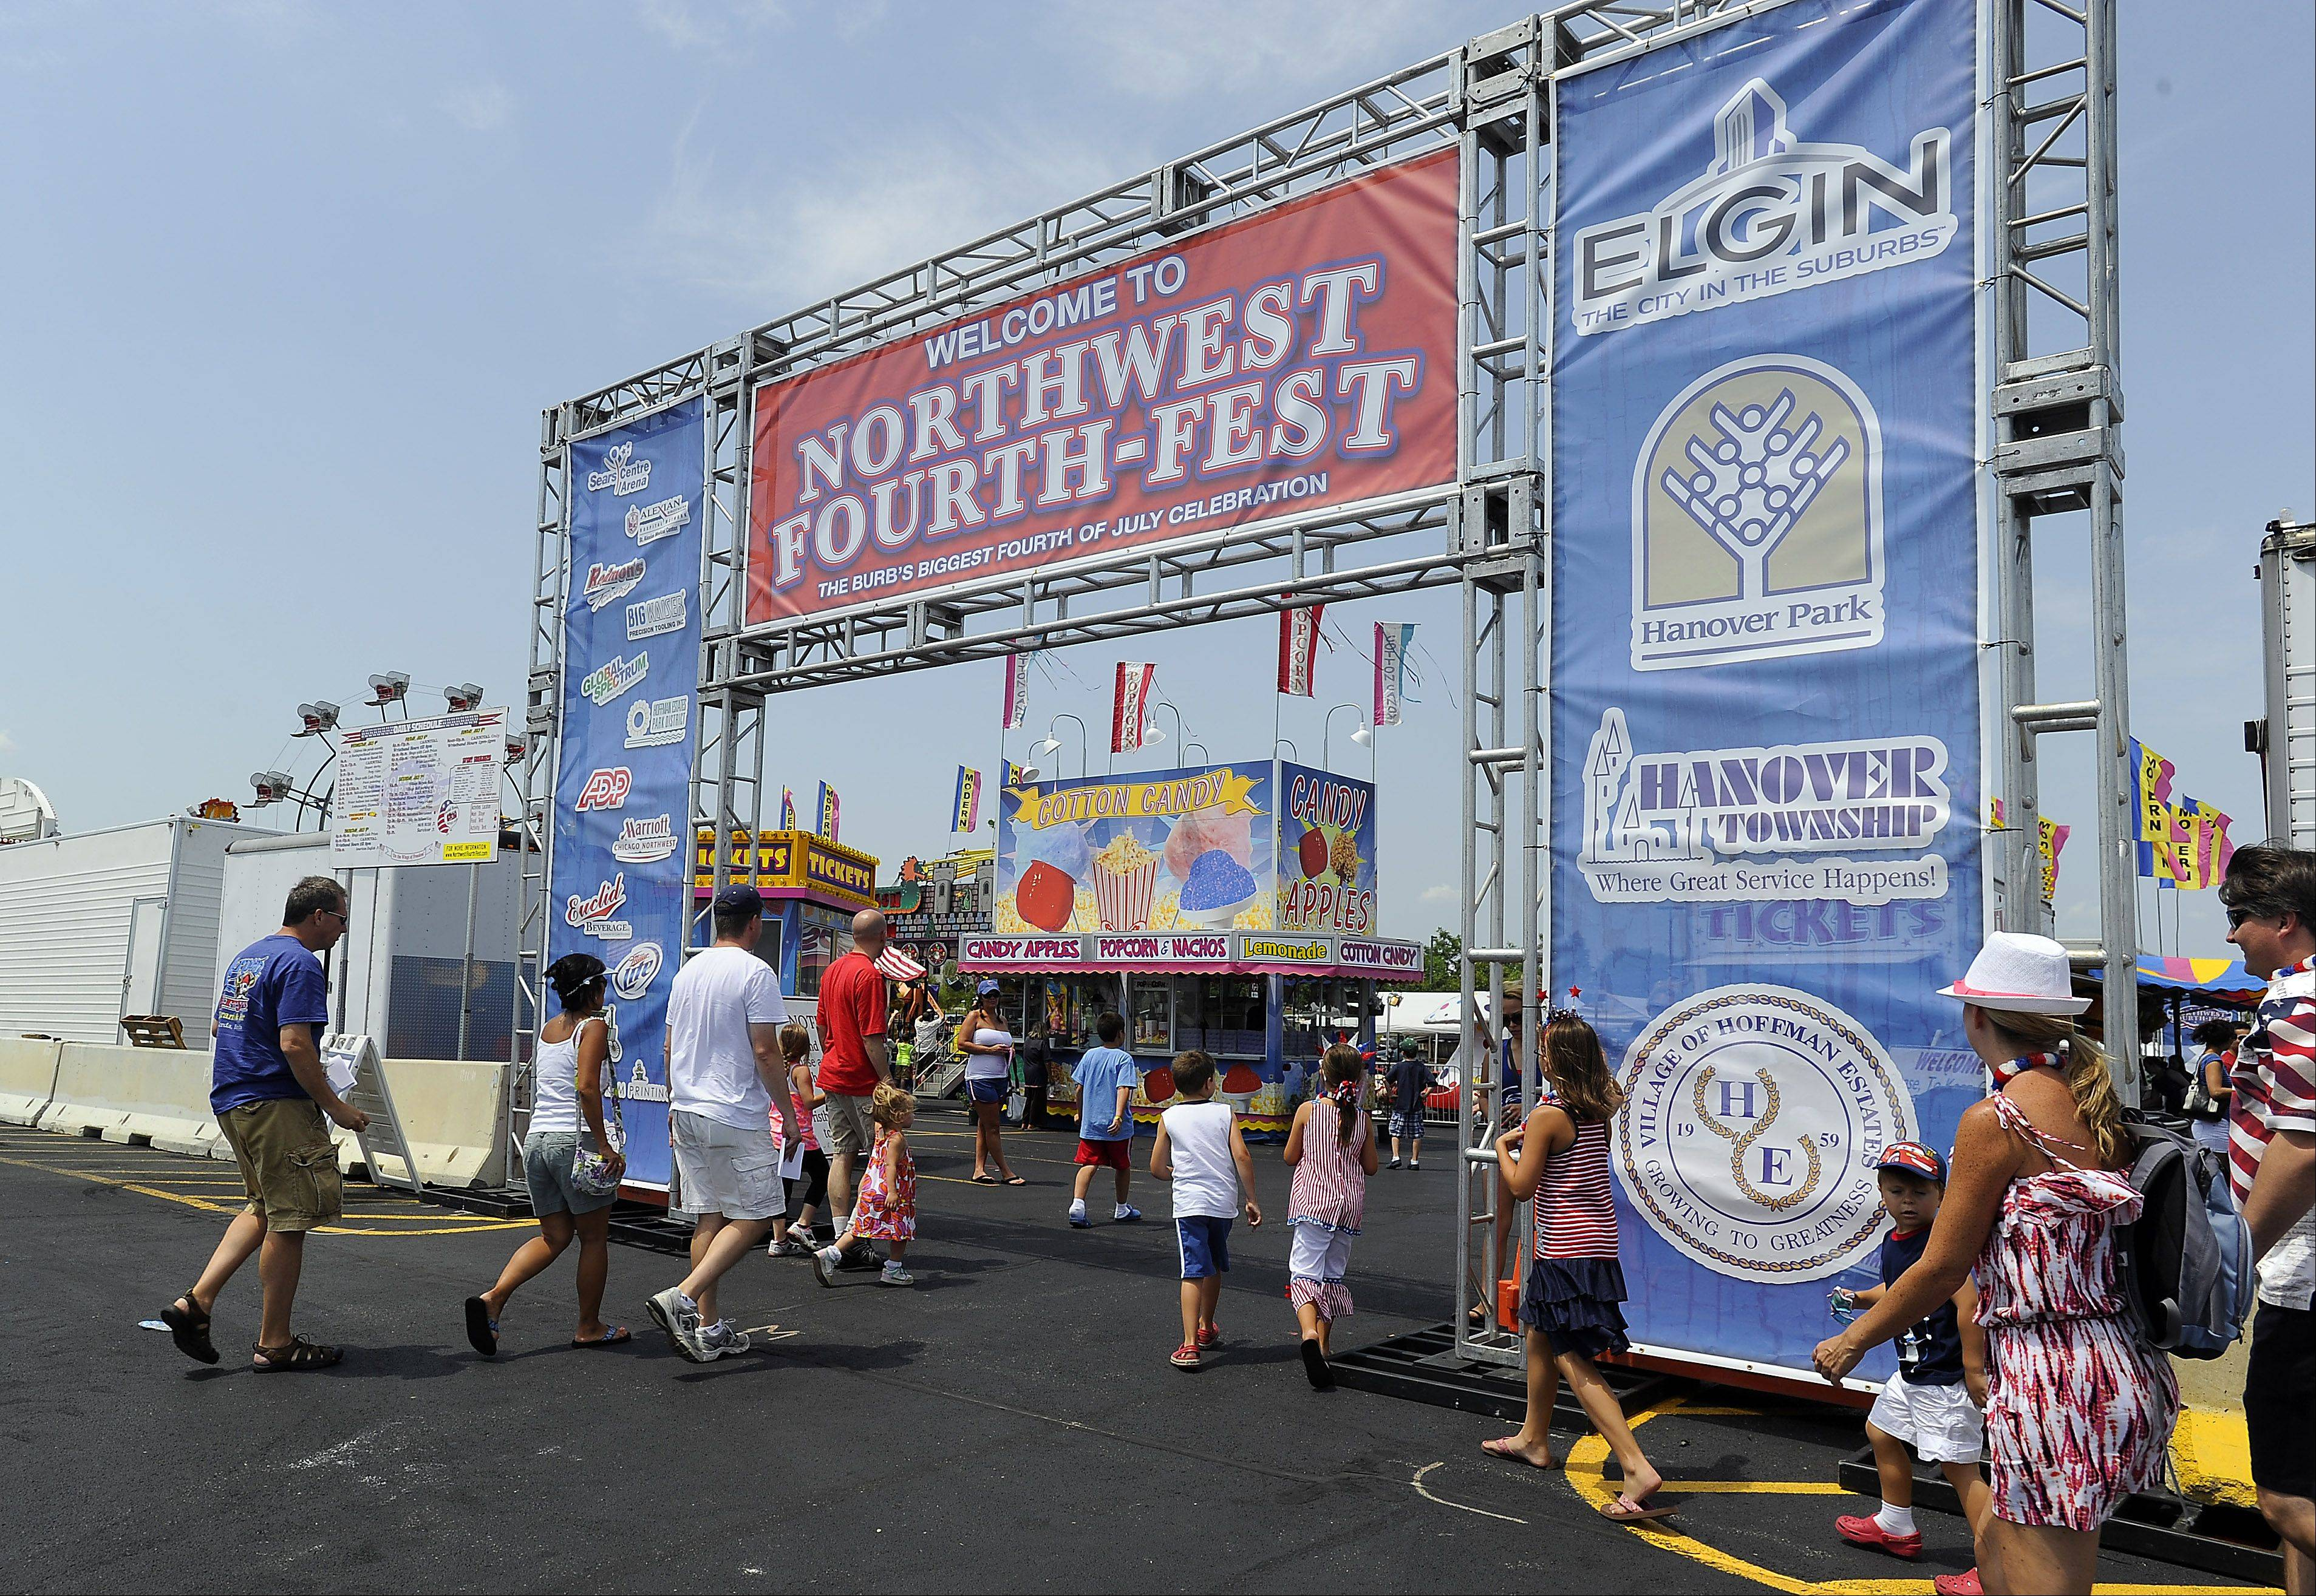 The Hoffman Estates village board didn't accept any bid Monday night for a fireworks vendor for this year's Northwest Fourth Fest at the Sears Centre Arena, as a result of complaints about last year's show.